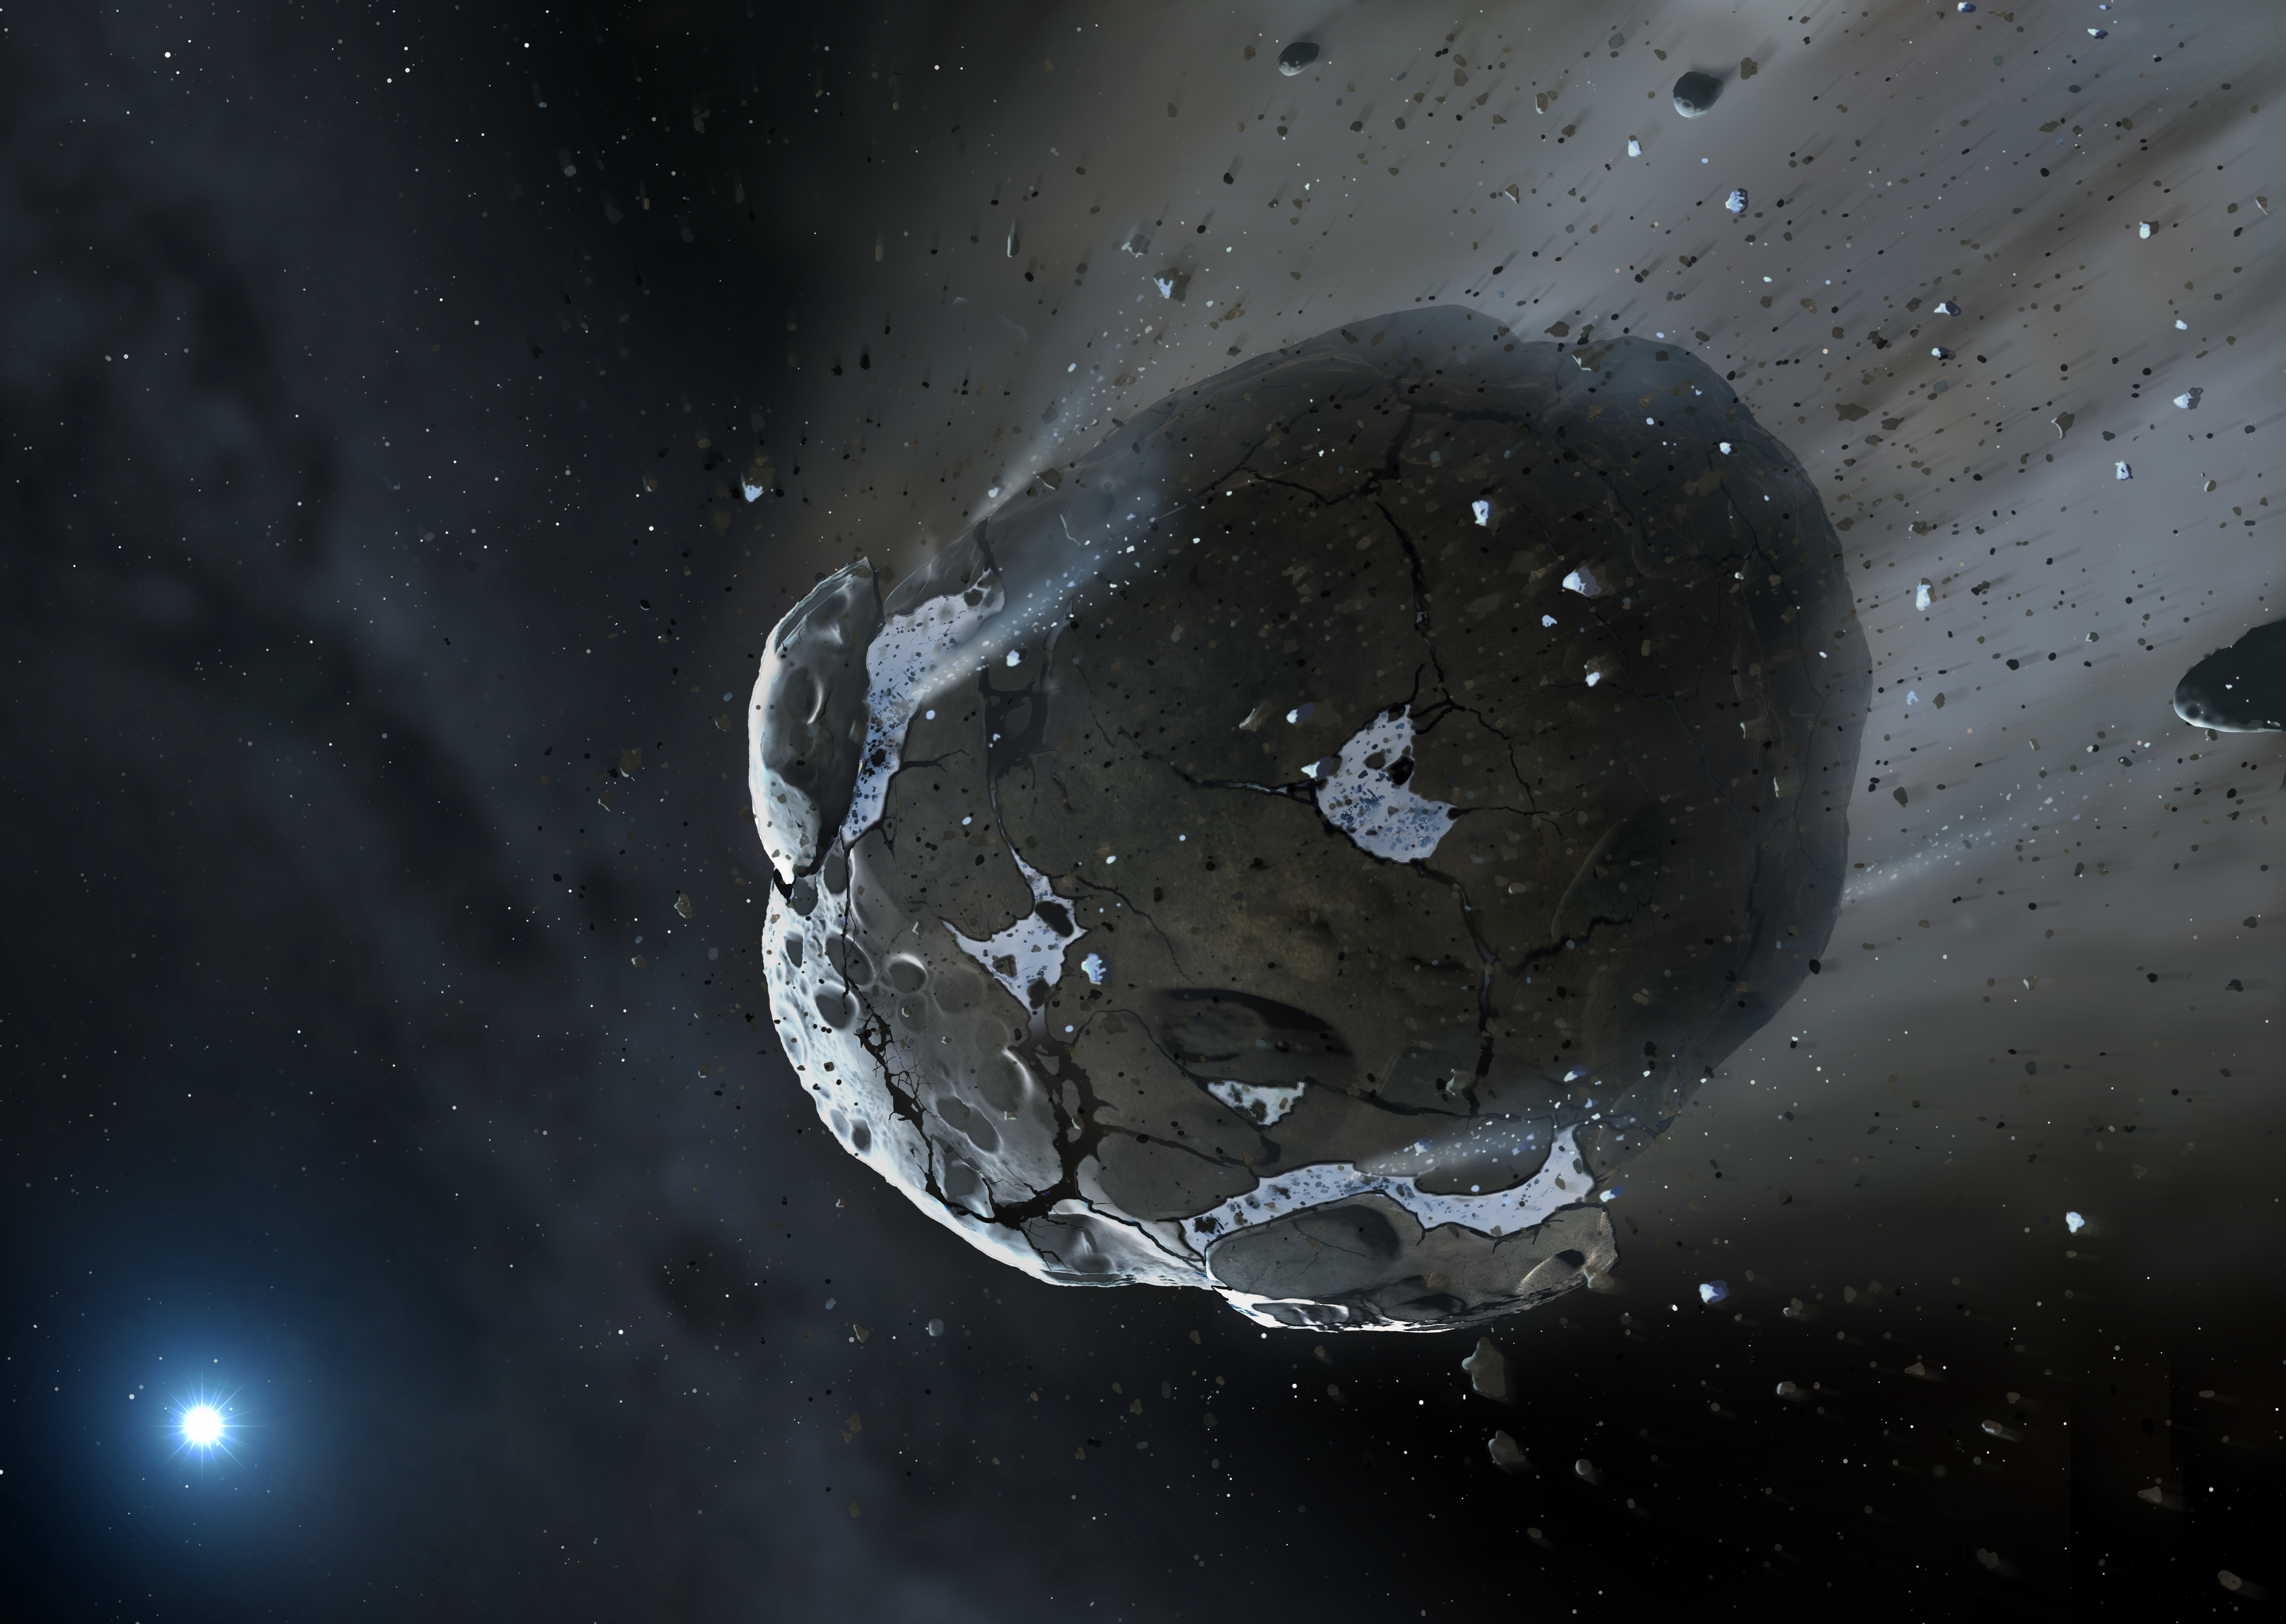 water discovered in remnants of extrasolar rocky world